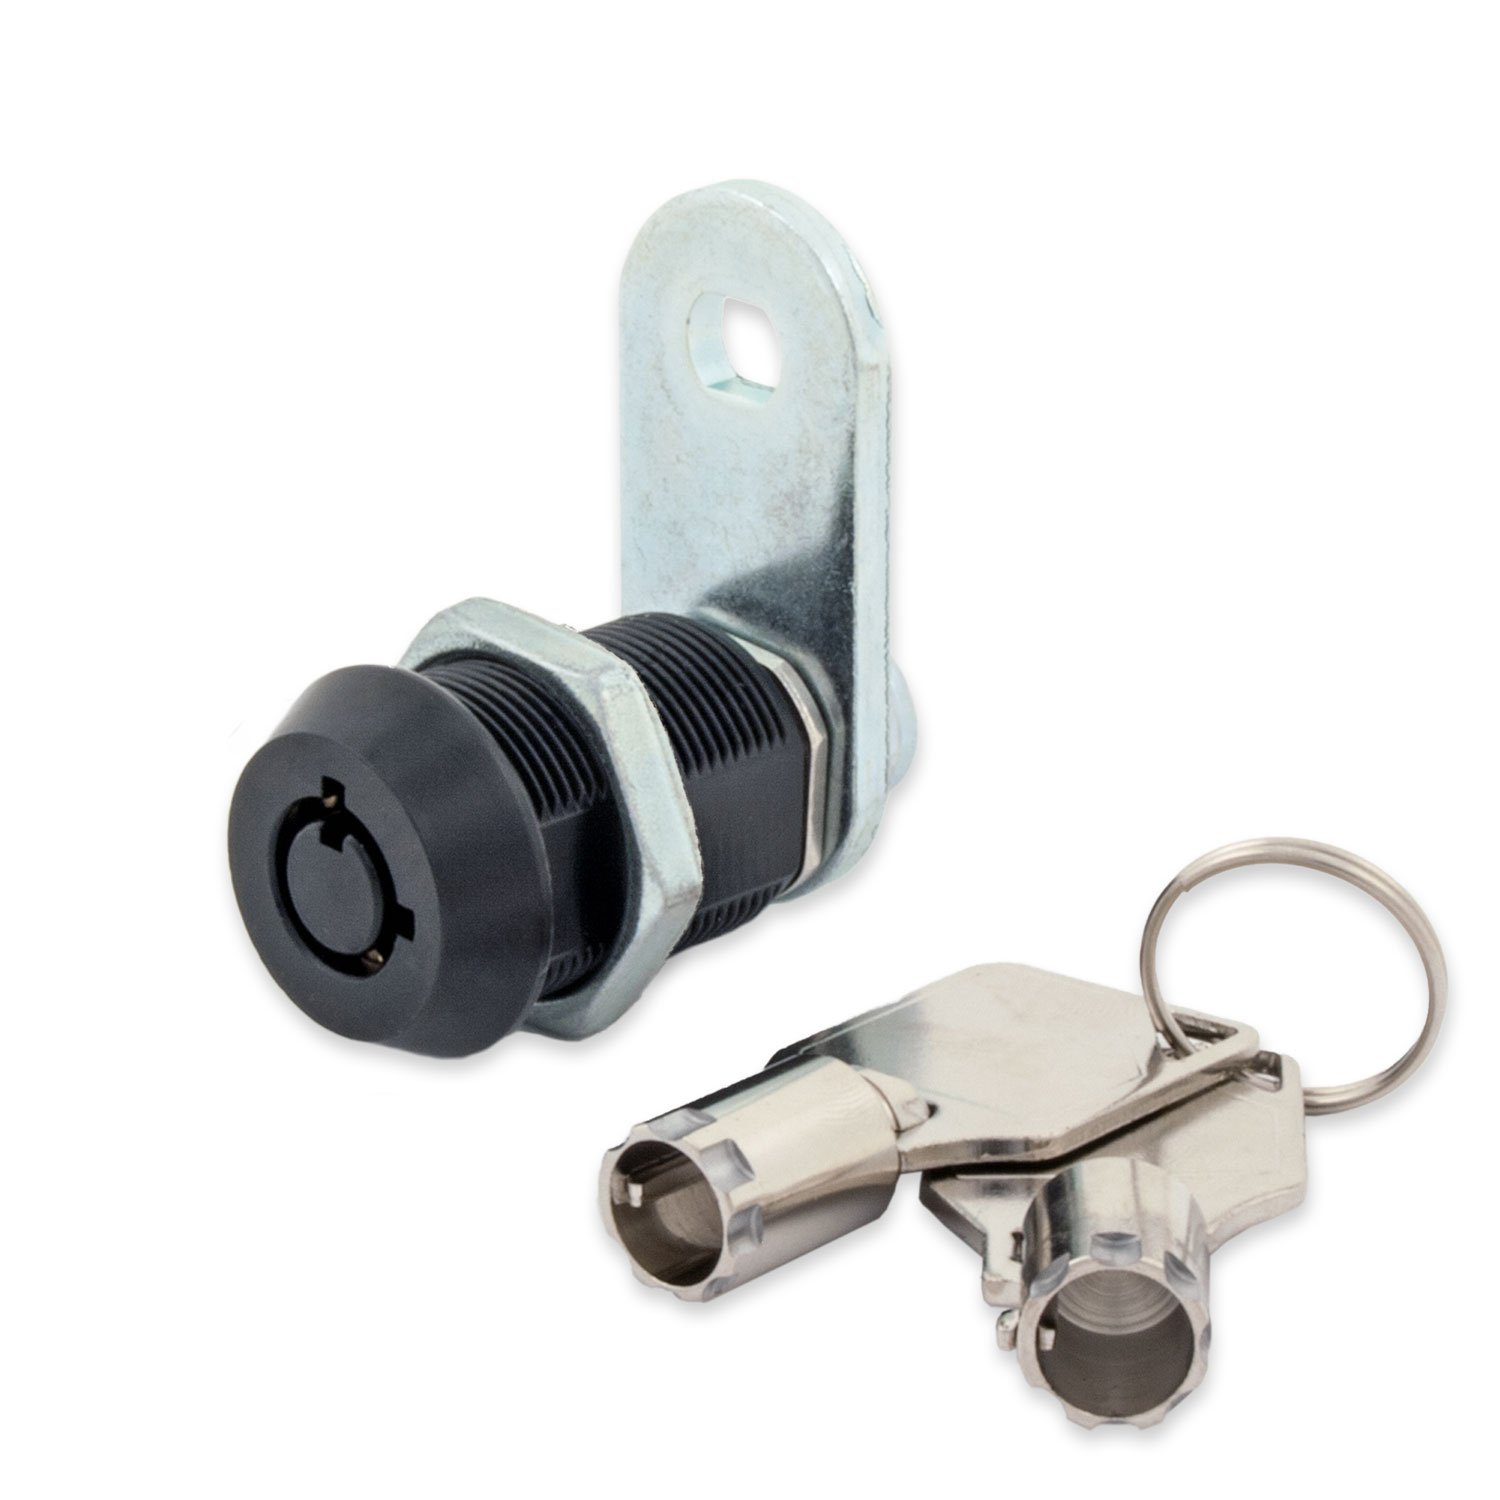 FJM Security 2400AM-BLK-KD Tubular Cam Lock with 7/8'' Cylinder and Black Finish, Keyed Different